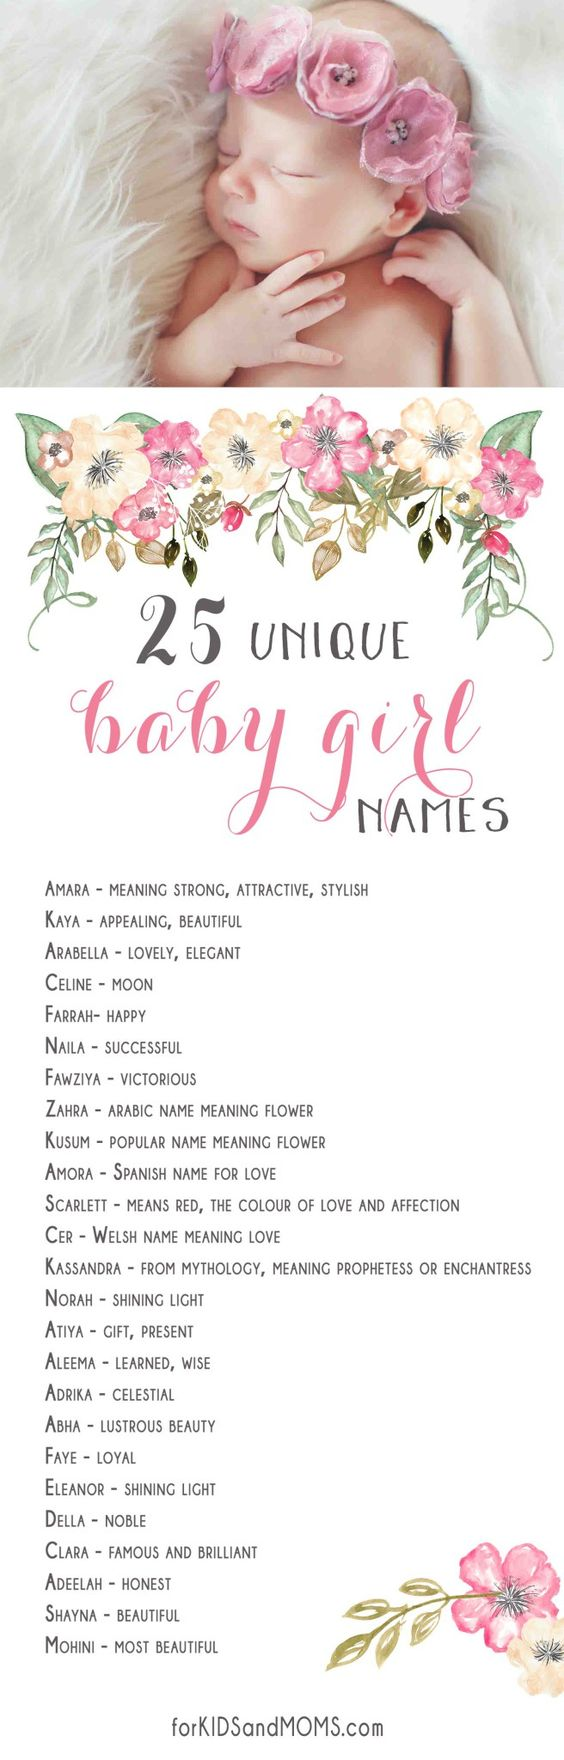 Girl names and meaning